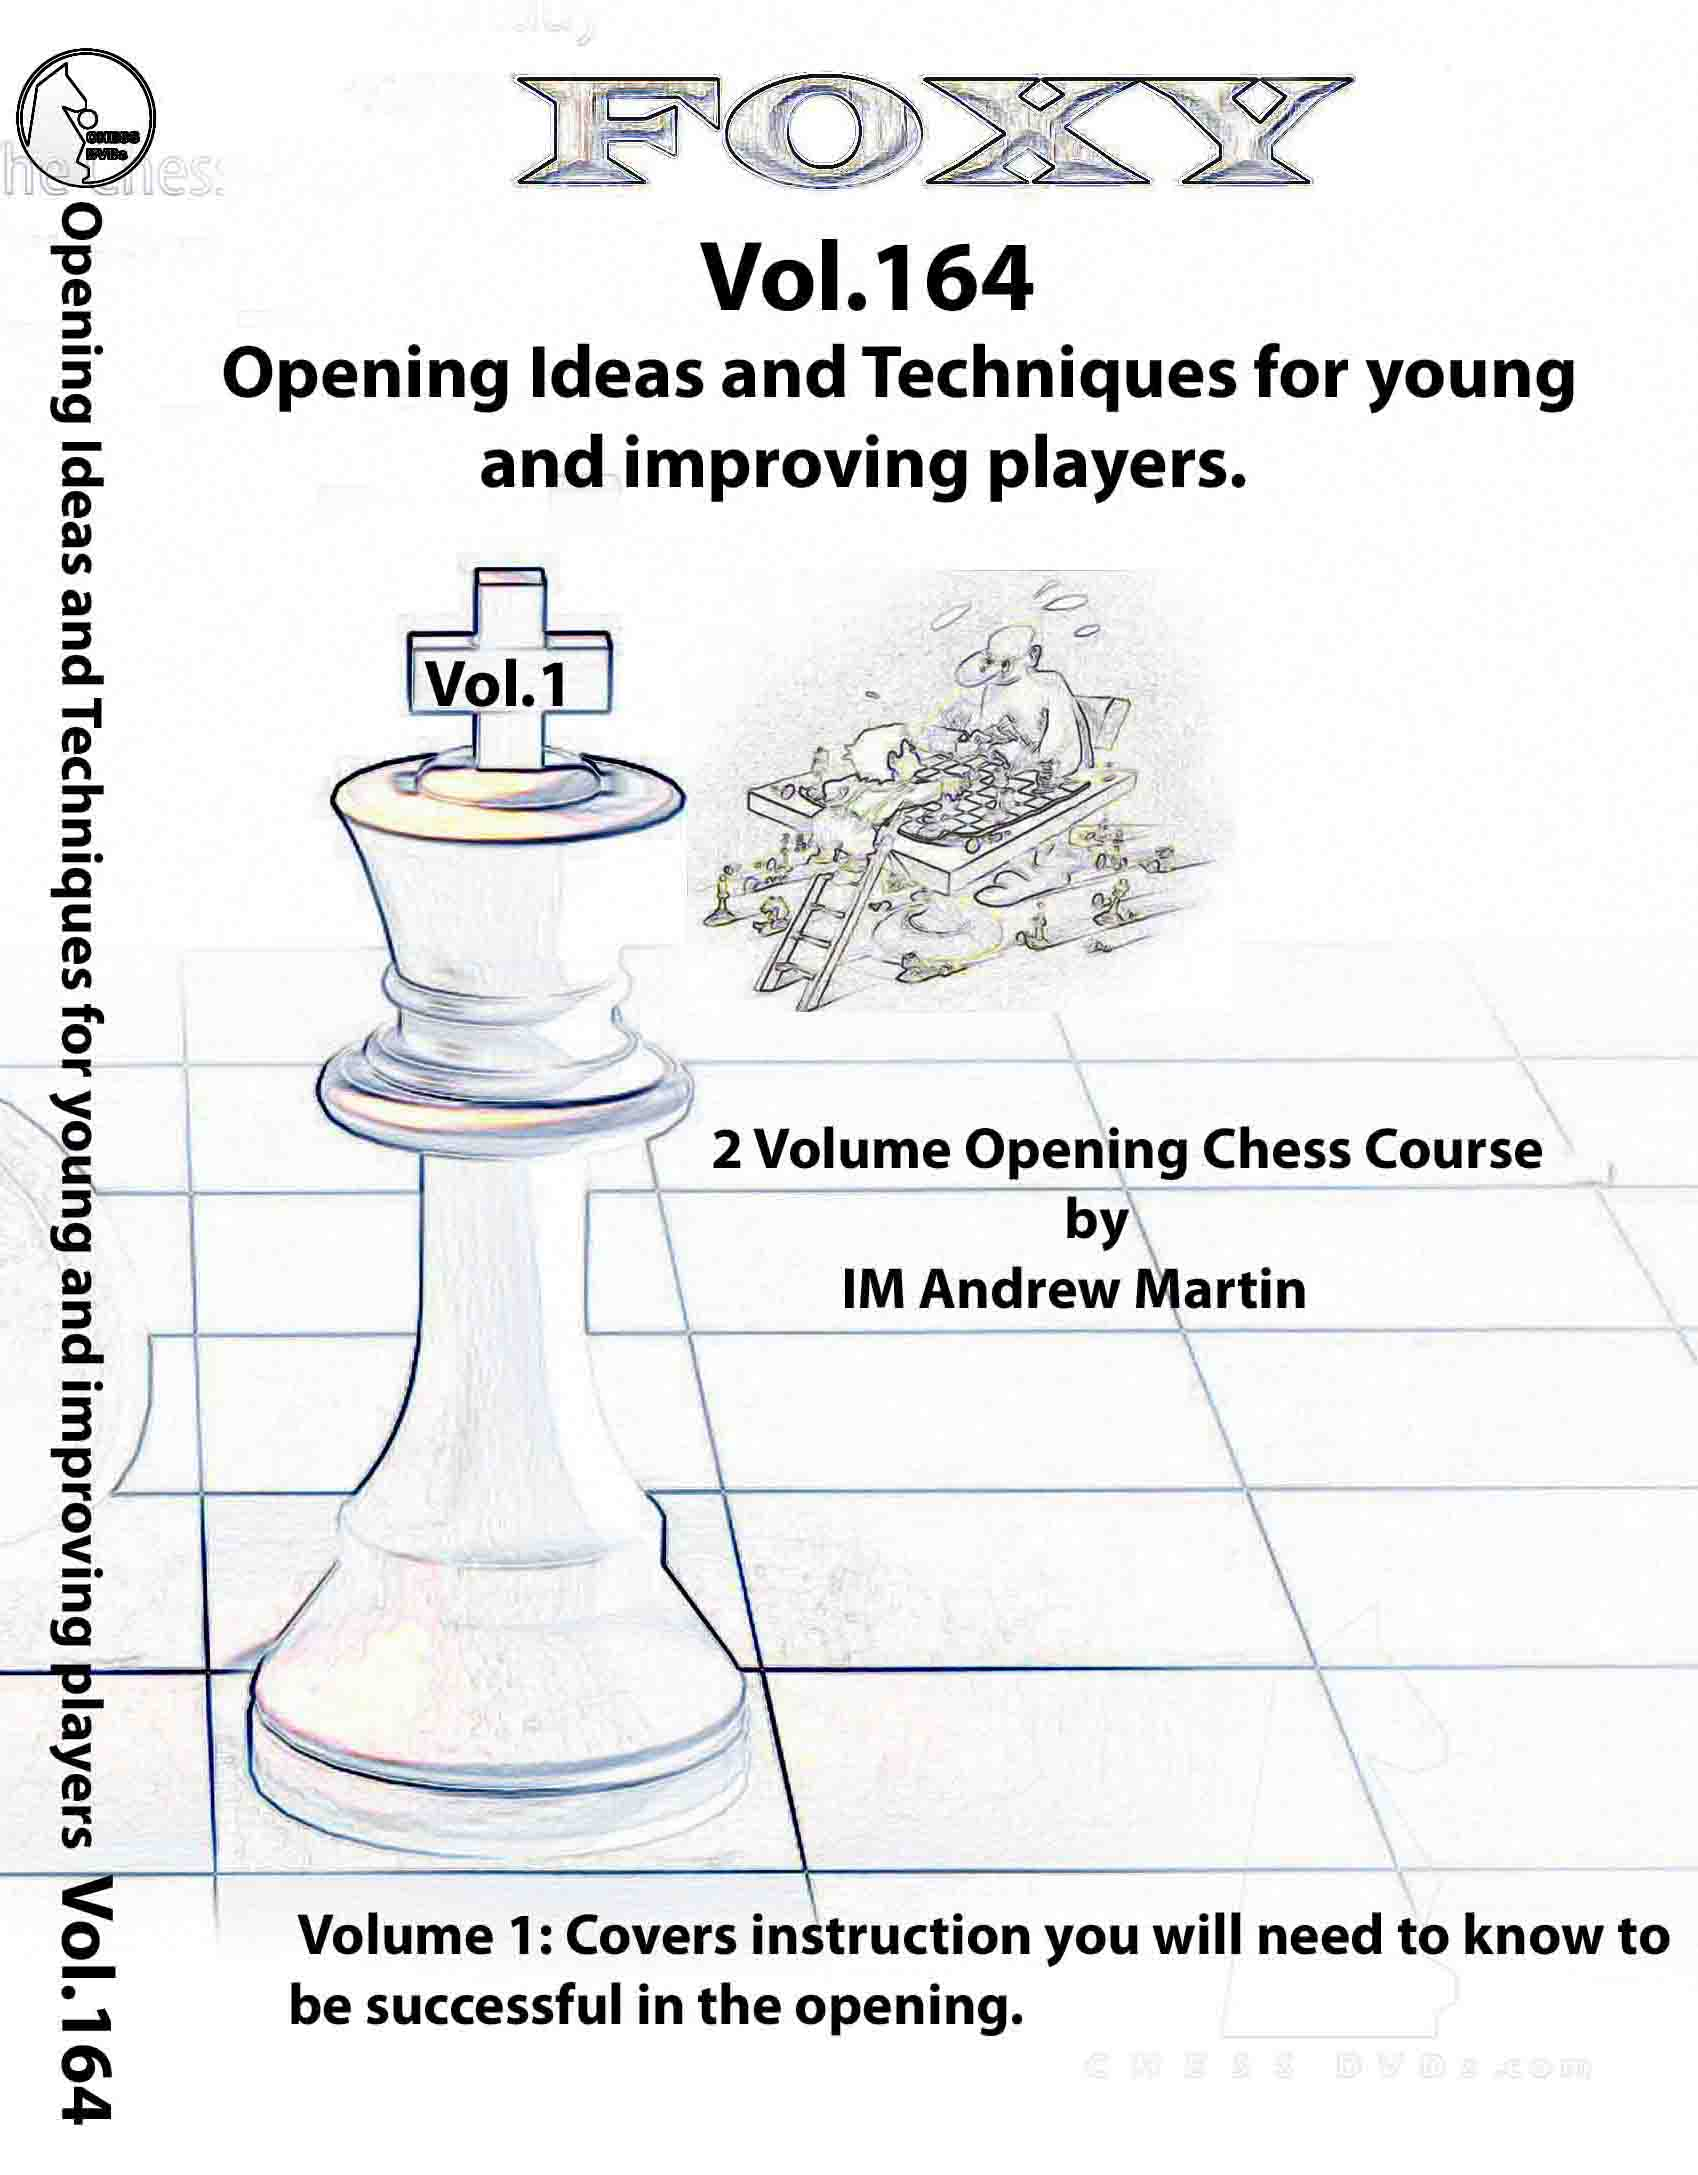 Volume 0164: Ideas and Techniques and improving players vol.1